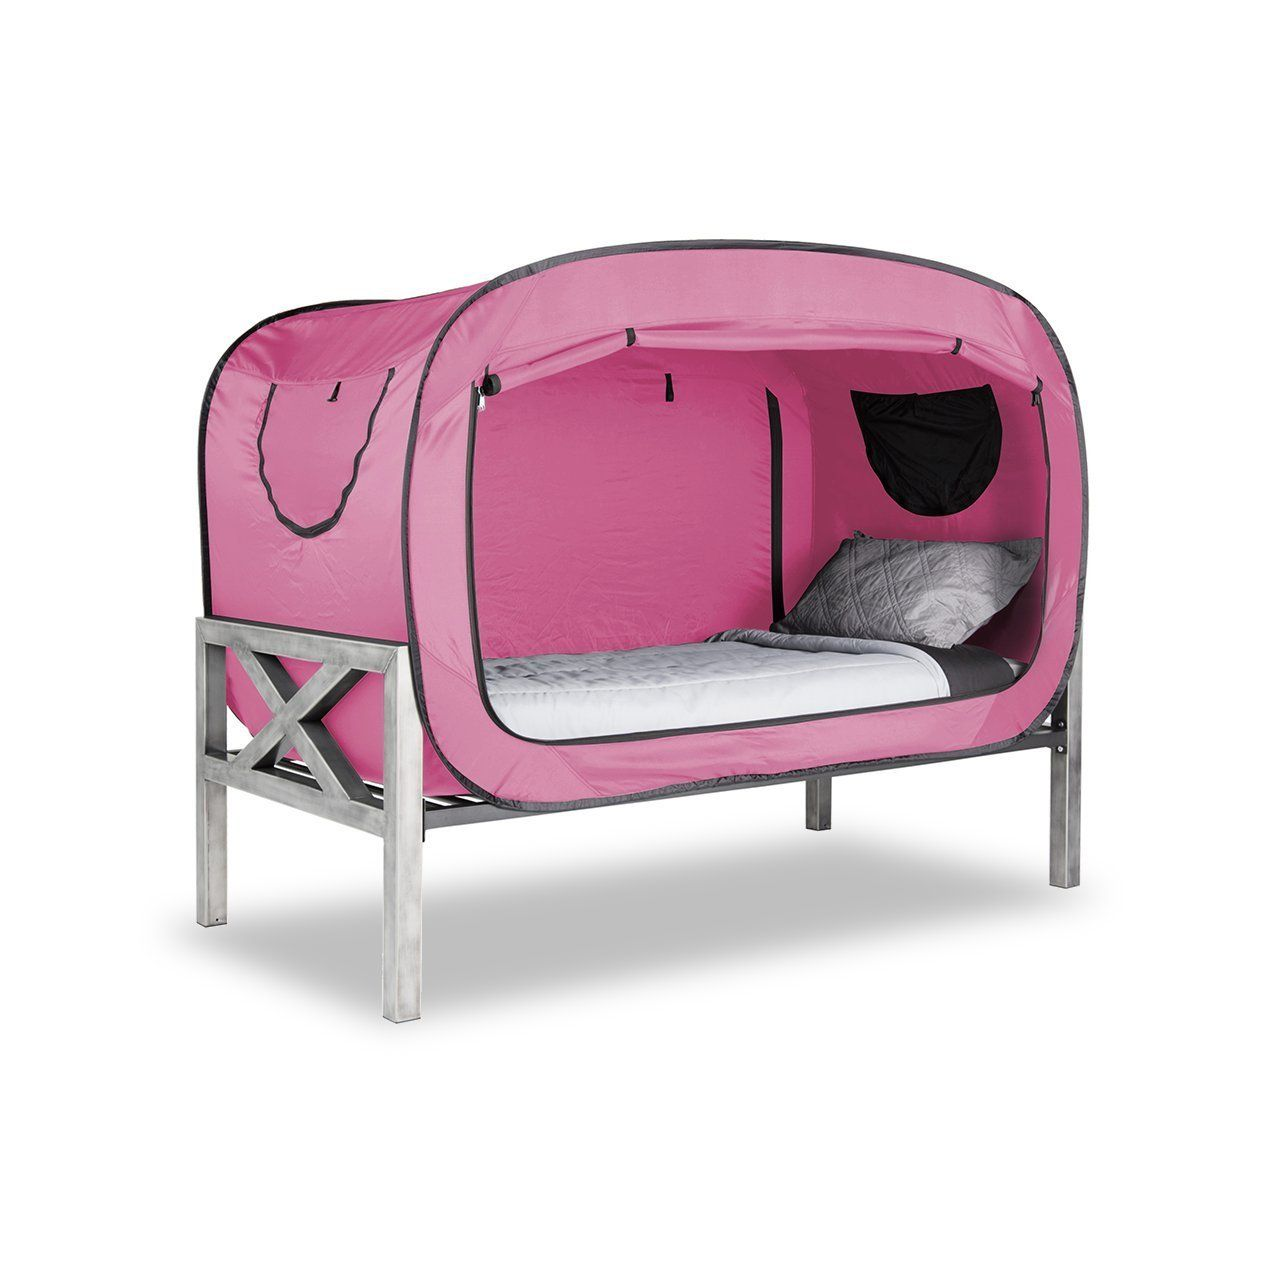 Privacy Pop Bed Tent Part - 26: Amazon.com: Privacy Pop Bed Tent (Twin) - PINK: Toys U0026 Games